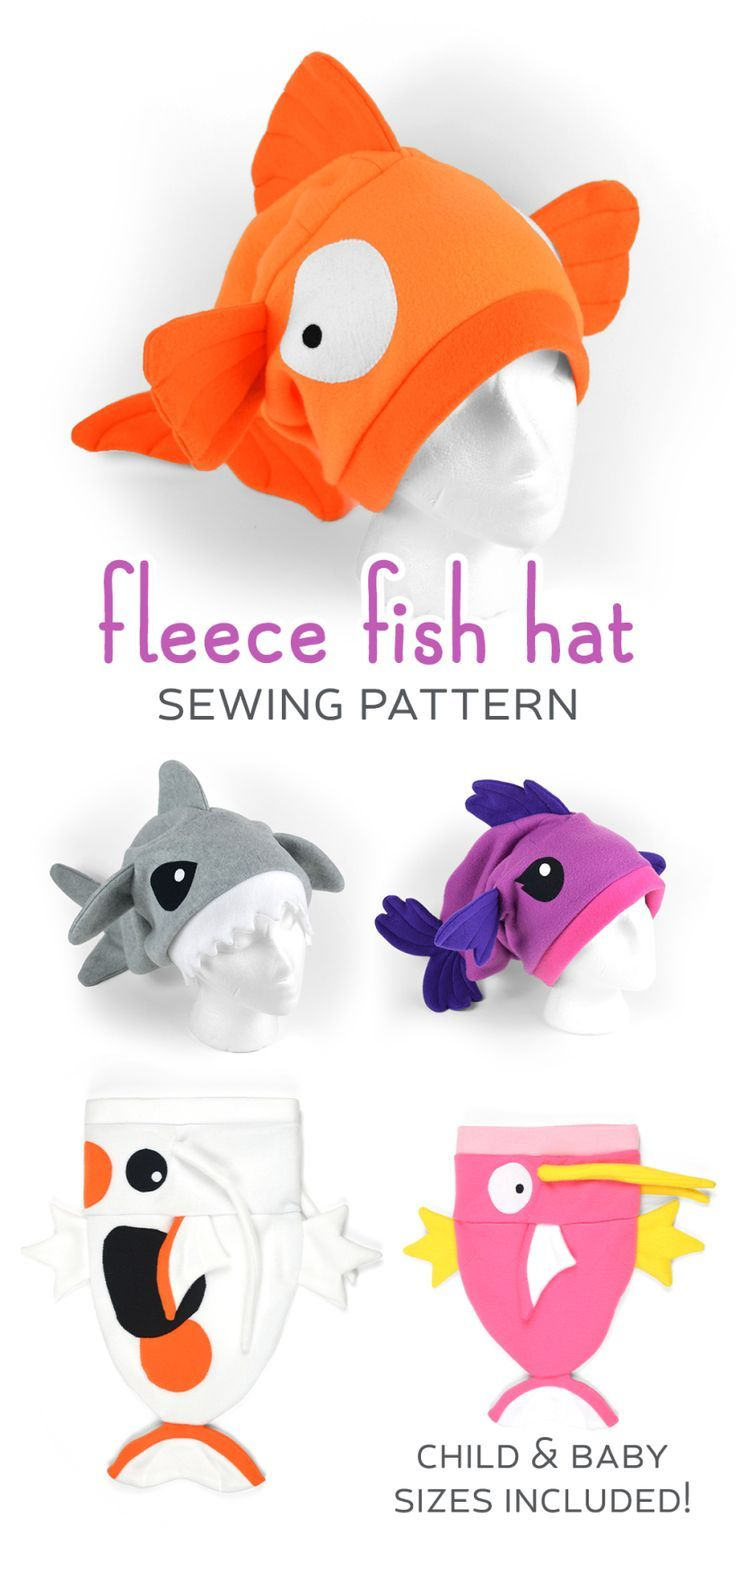 New Shop Pattern! Fleece Fish Hat #knittingpatternstoys